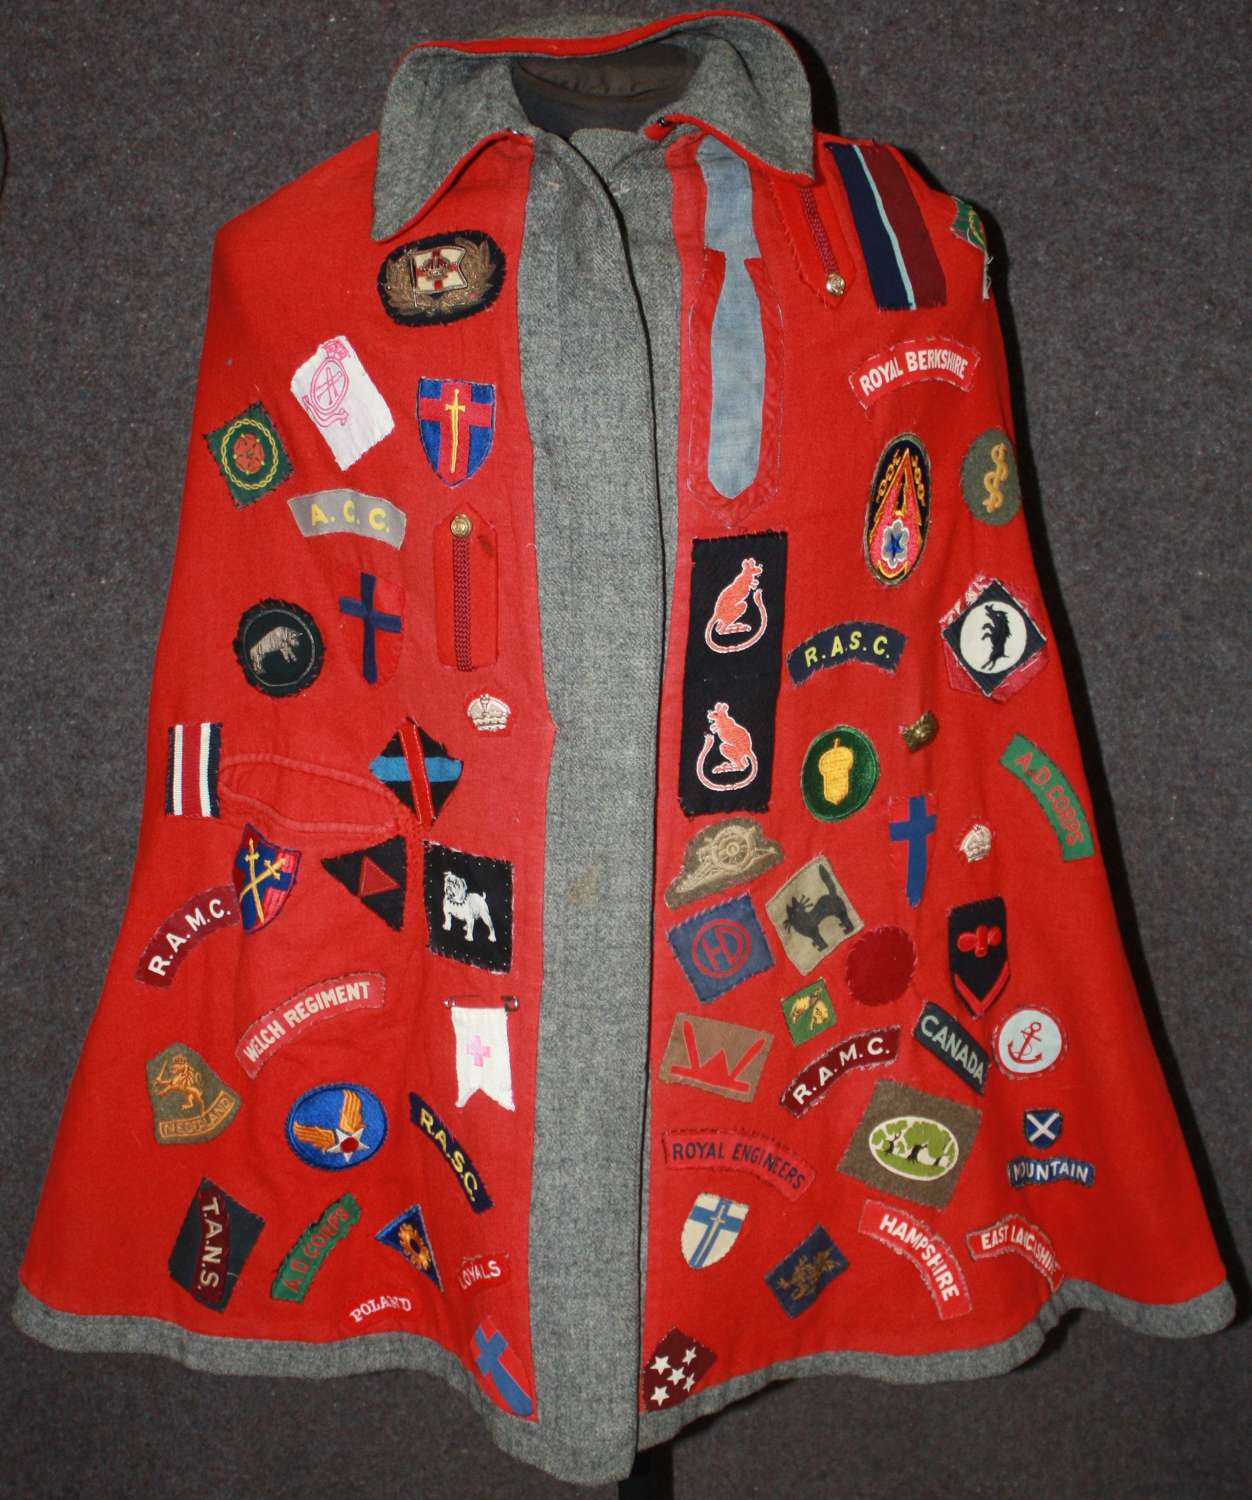 A SCARCE EXAMPLE OF THE TERRITORIAL ARMY NURSING SERVICE TIPPET